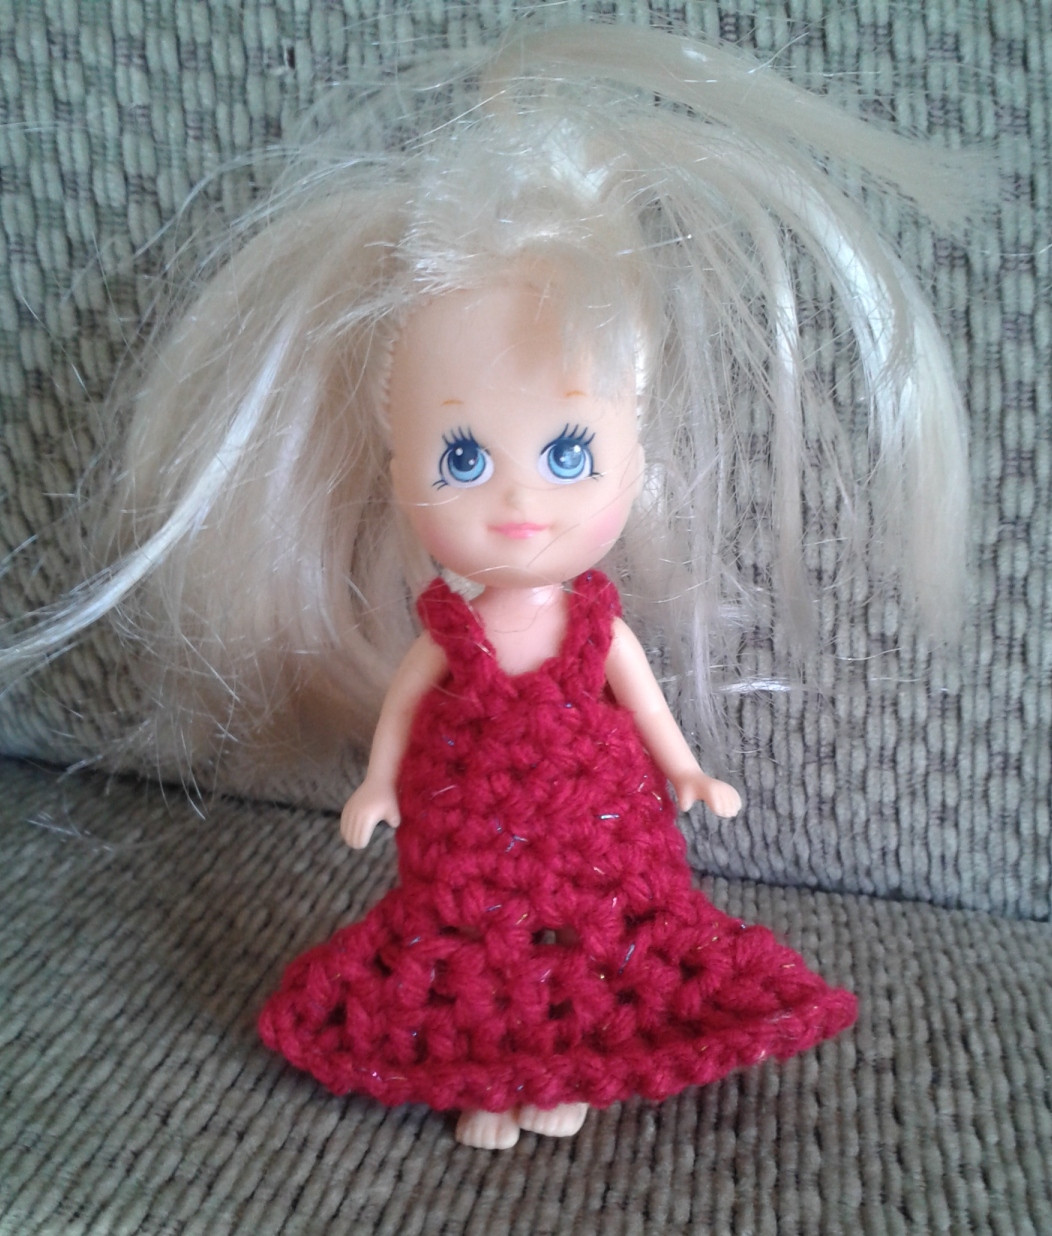 Crochet Doll Awesome Small Doll Clothing Free Patterns Of Crochet Doll Inspirational Snow White Doll Crochet Pattern